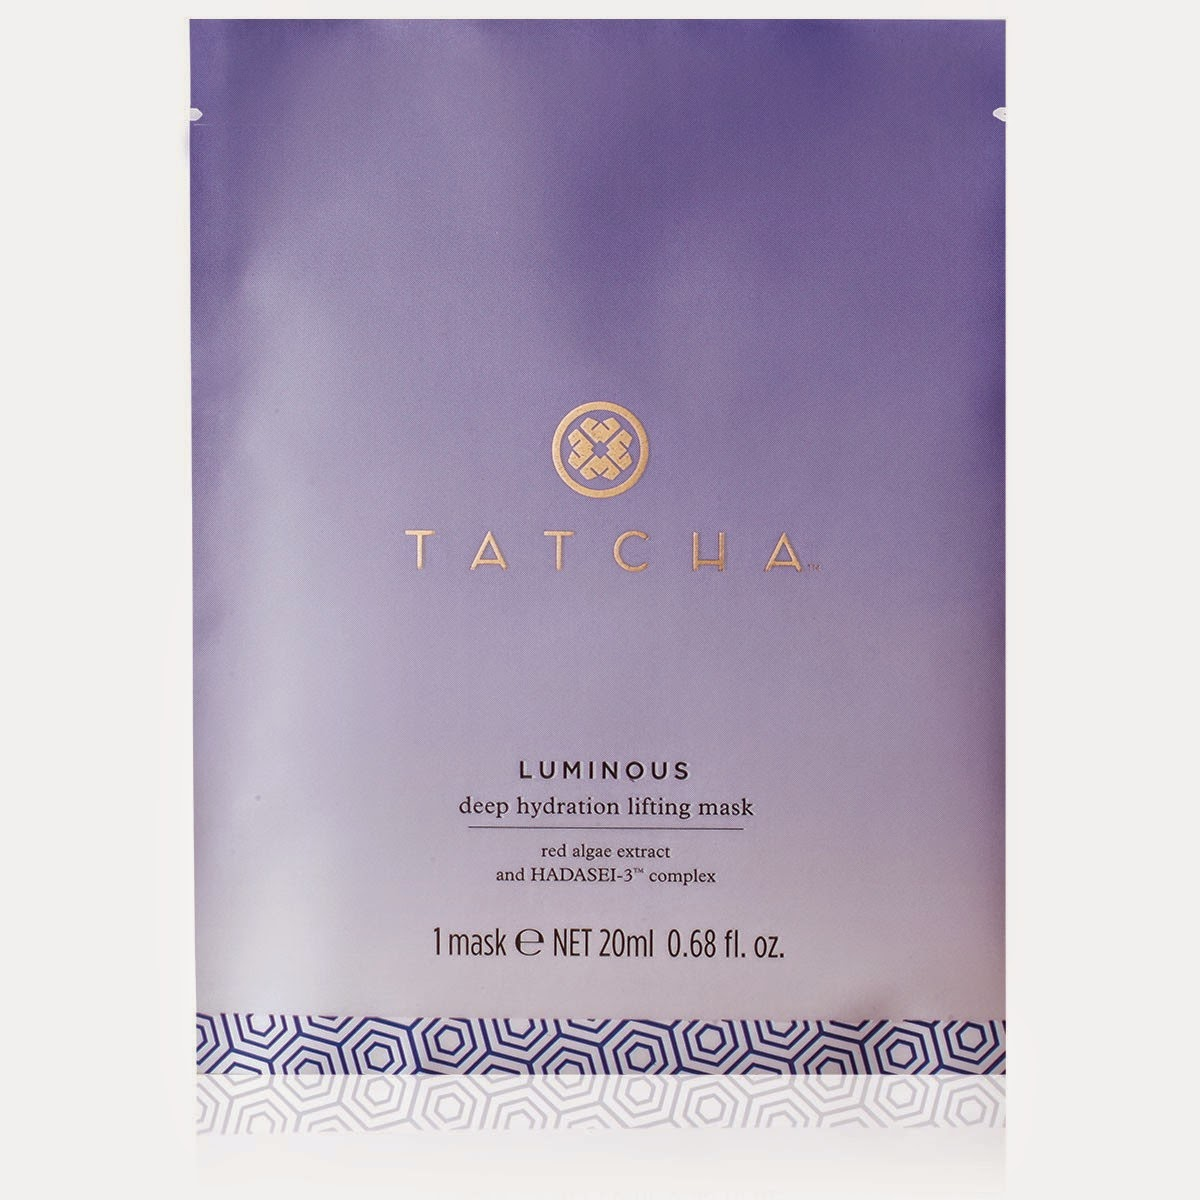 Tatcha-Luminous-Deep-Hydration-Lifting-Mask